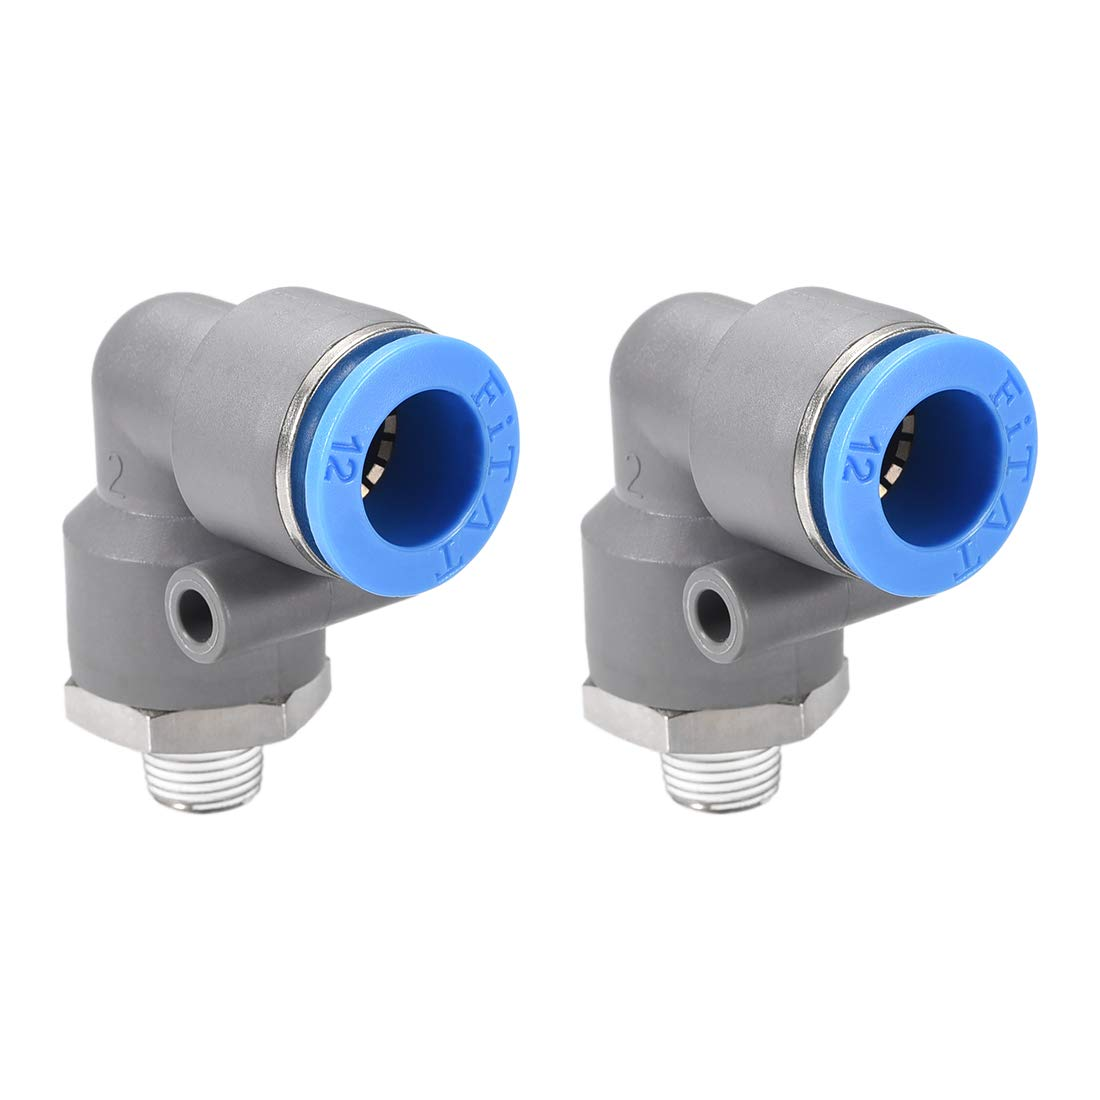 uxcell Elbow Push to Connect Air Fittings 10mm Tube OD X 1//8PT Male Thread Pneumatic Quick Release Connectors Grey 2Pcs